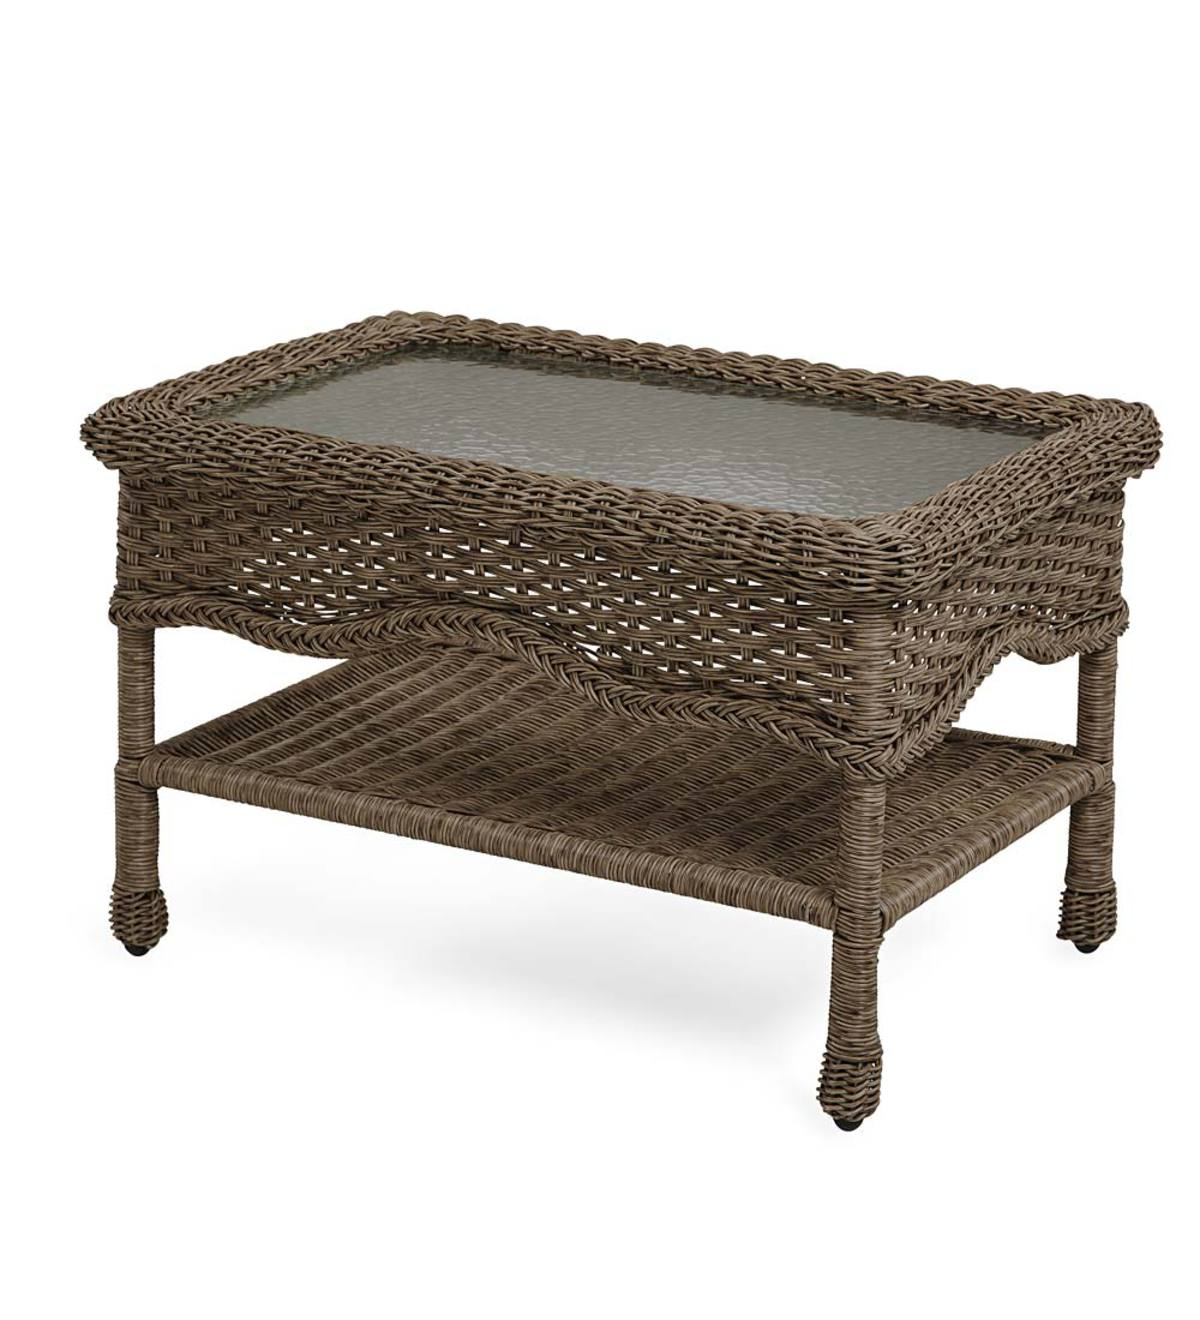 Sale! Prospect Hill Wicker Coffee Table with Glass Tabletop - Beach House Walnut